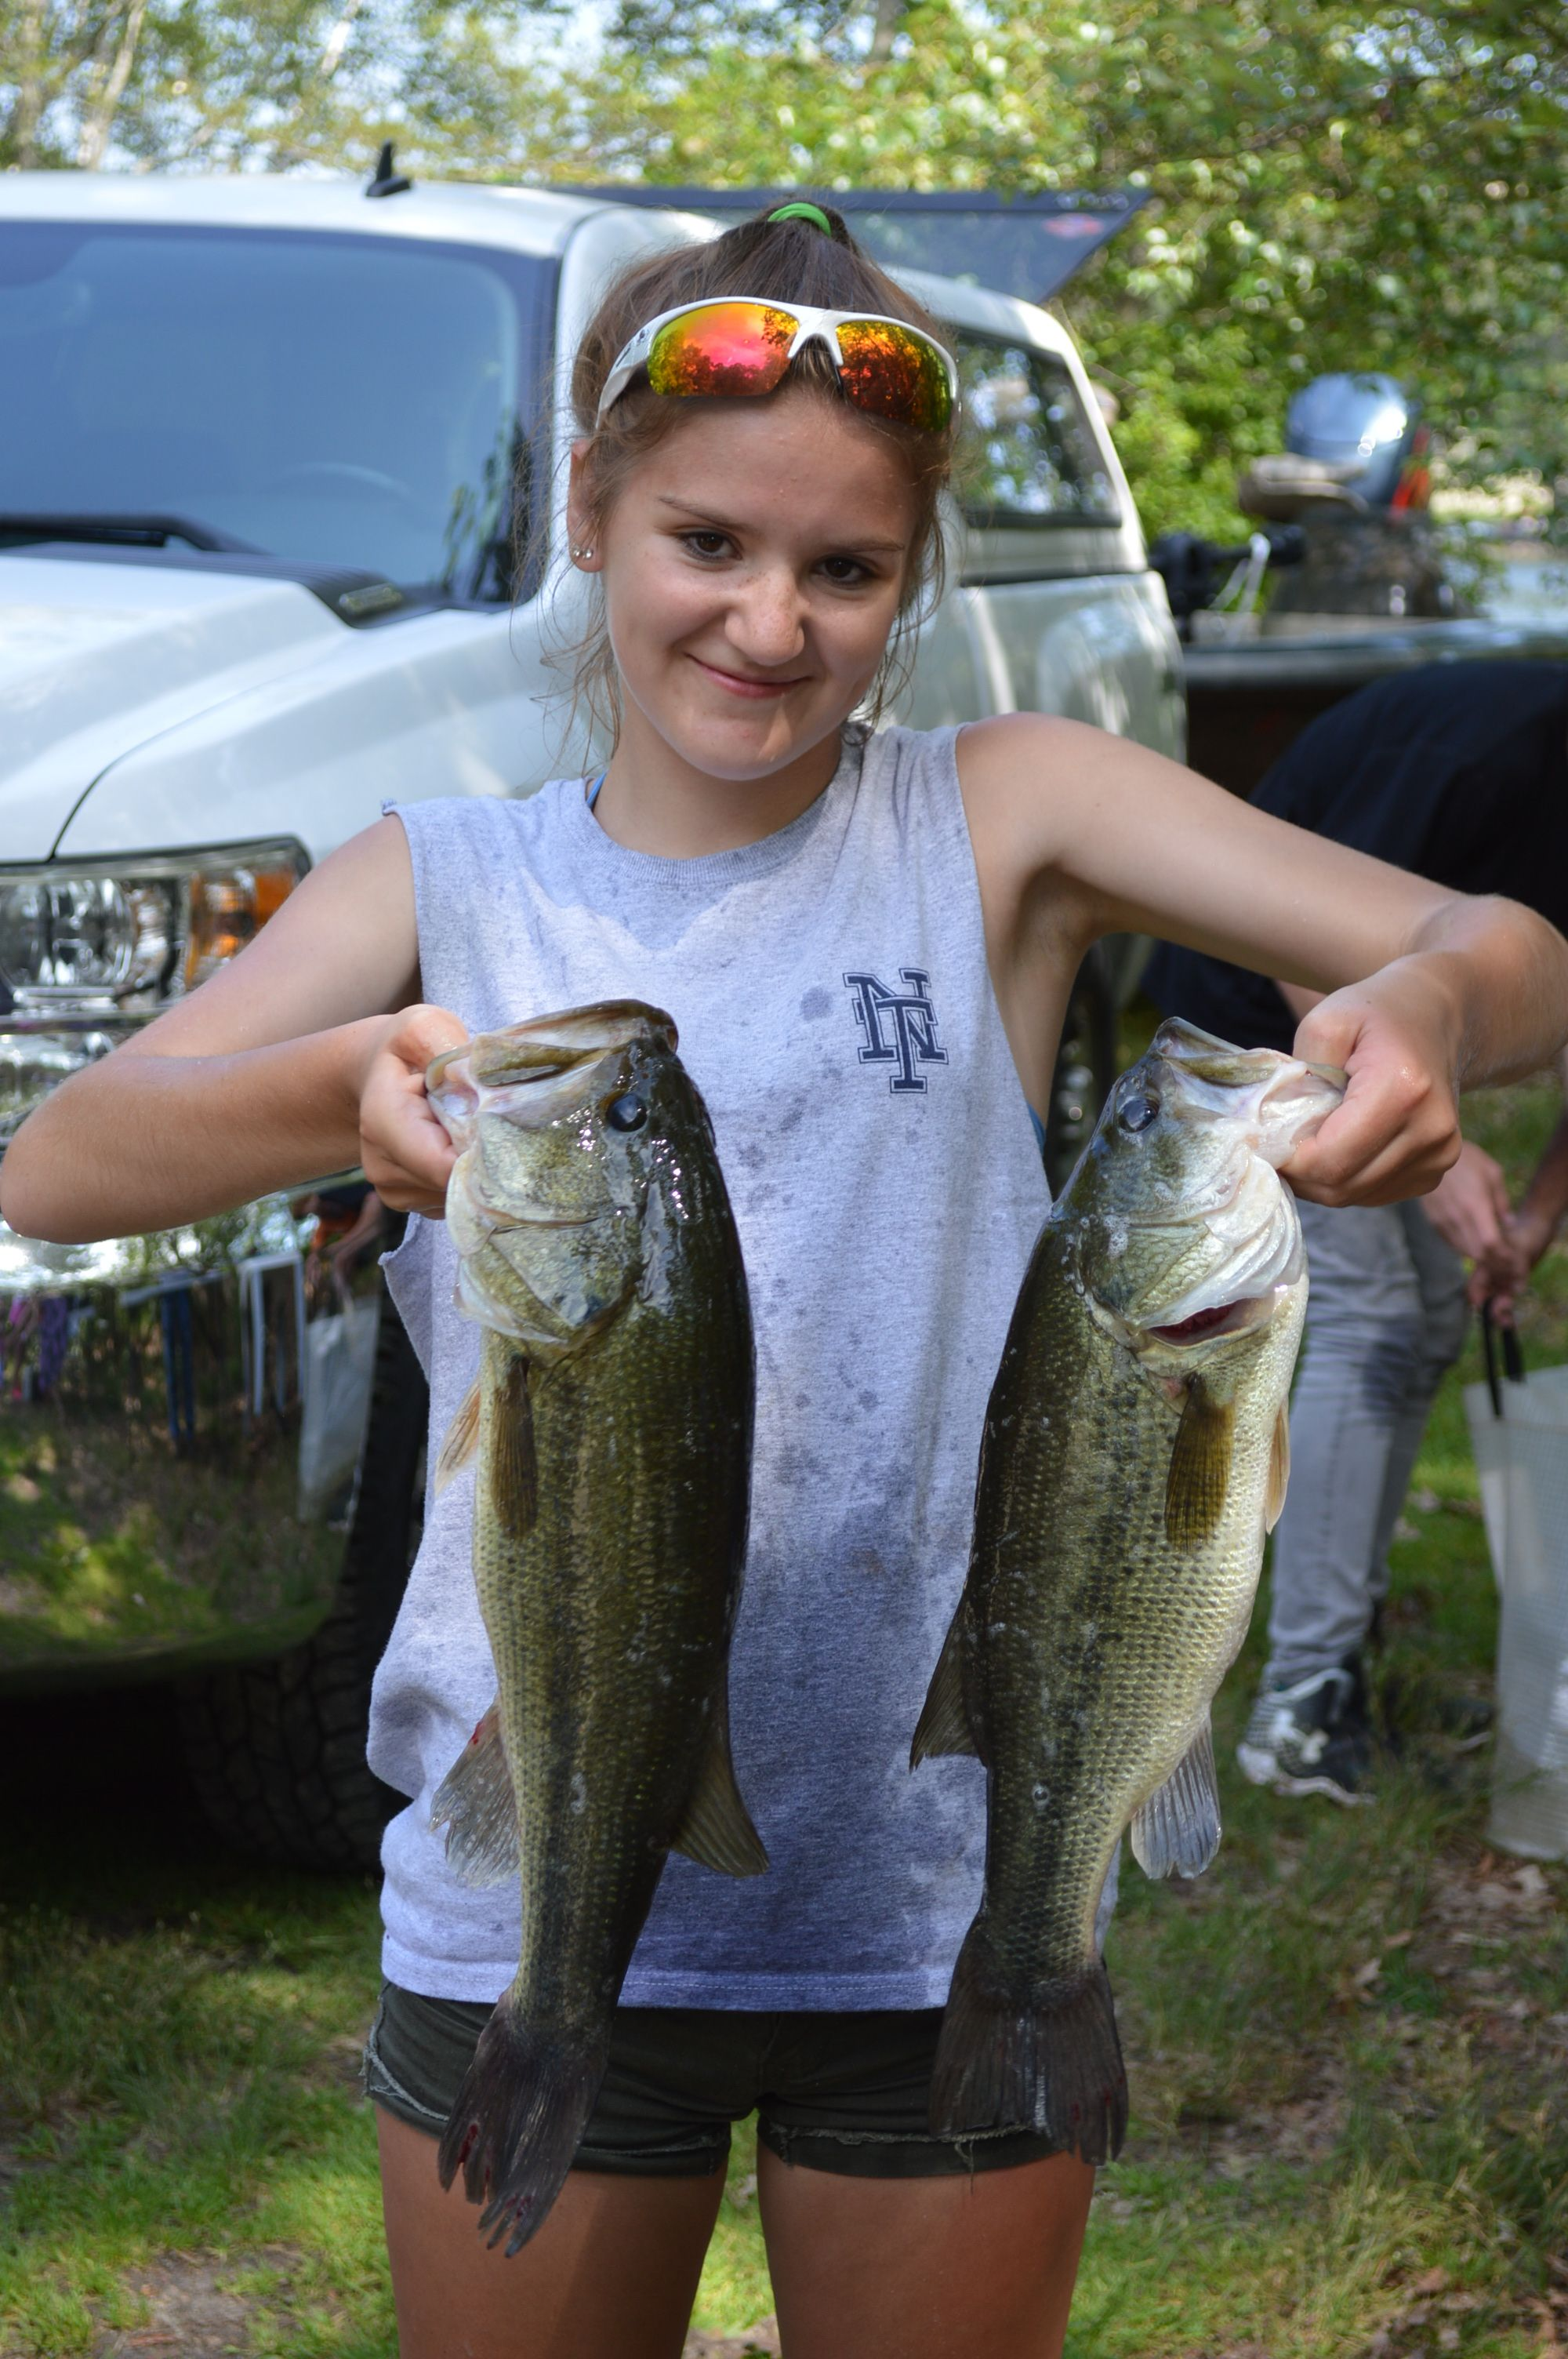 My sister & her Team mate placed 4th at the RI Bass High